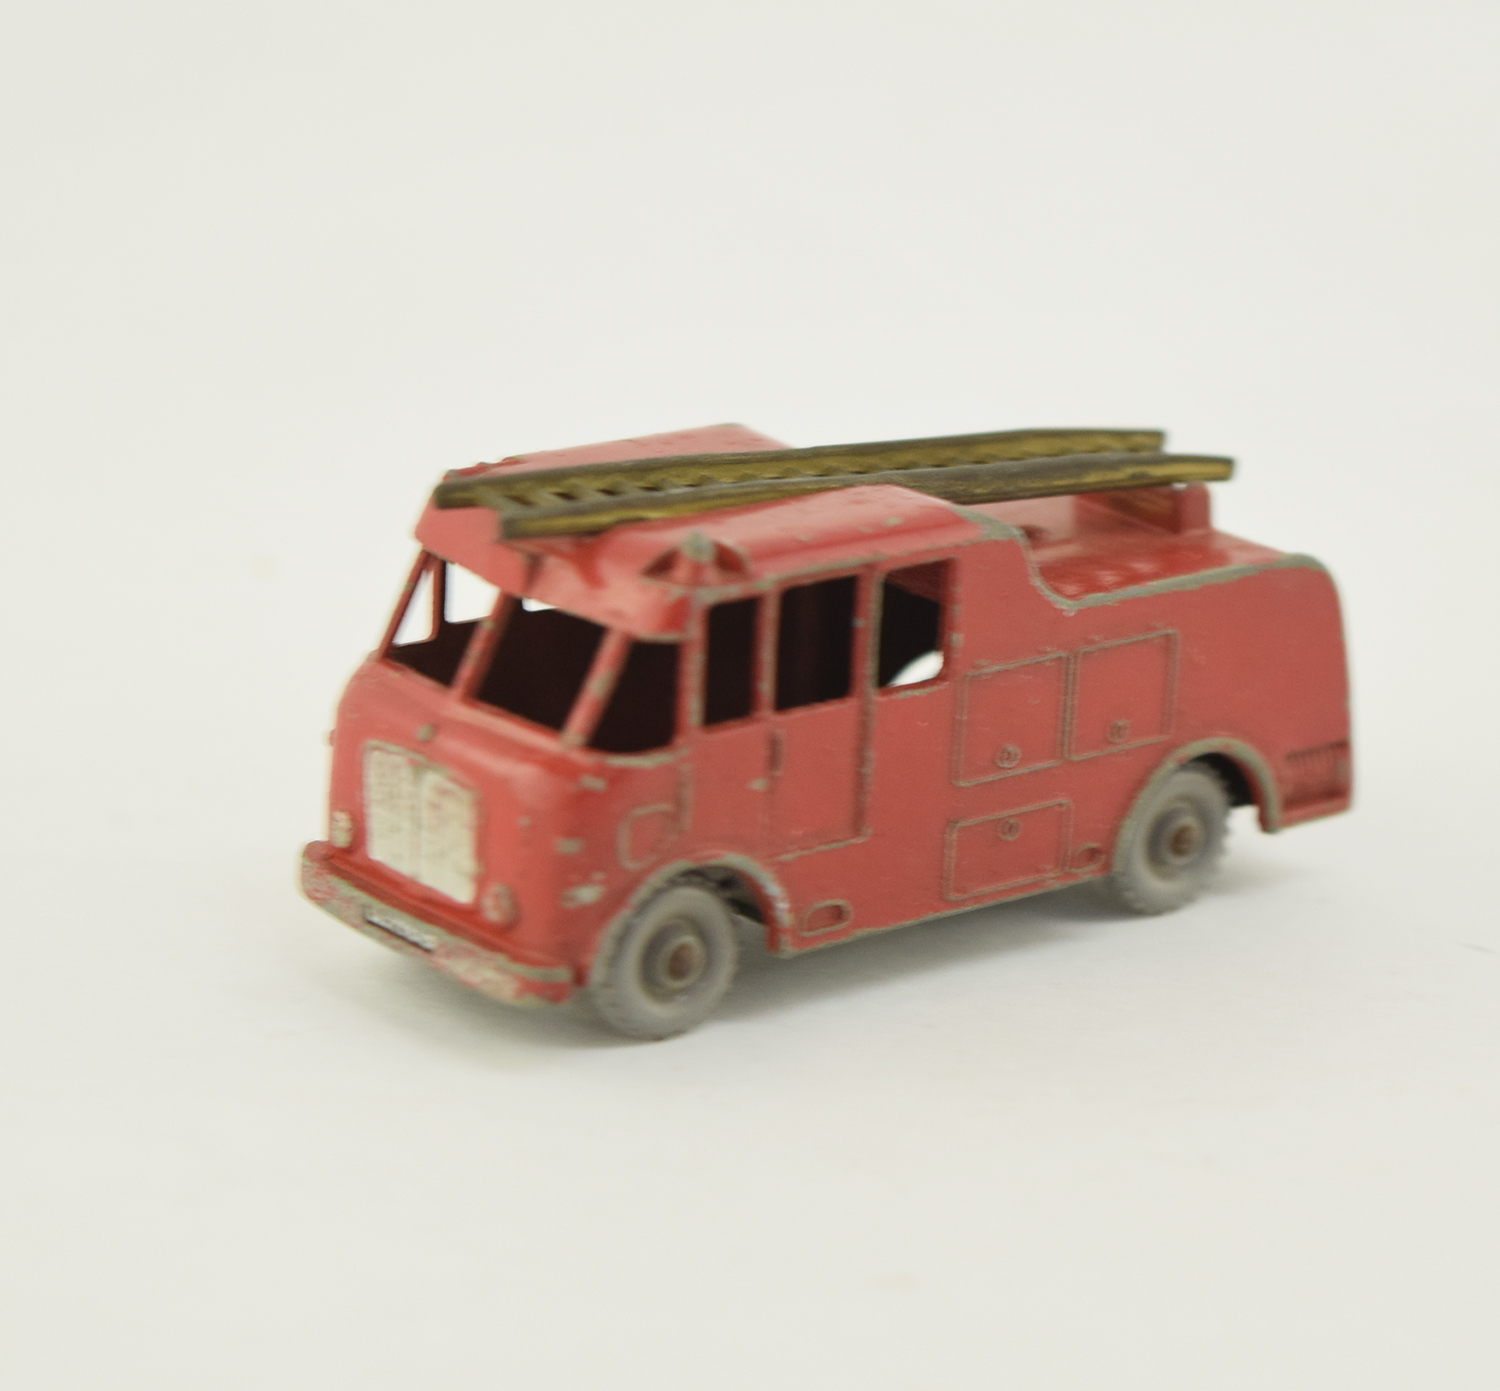 MERRYWEATHER_MARQUIS_SERIESⅢ_No.9_FIRE ENGINE